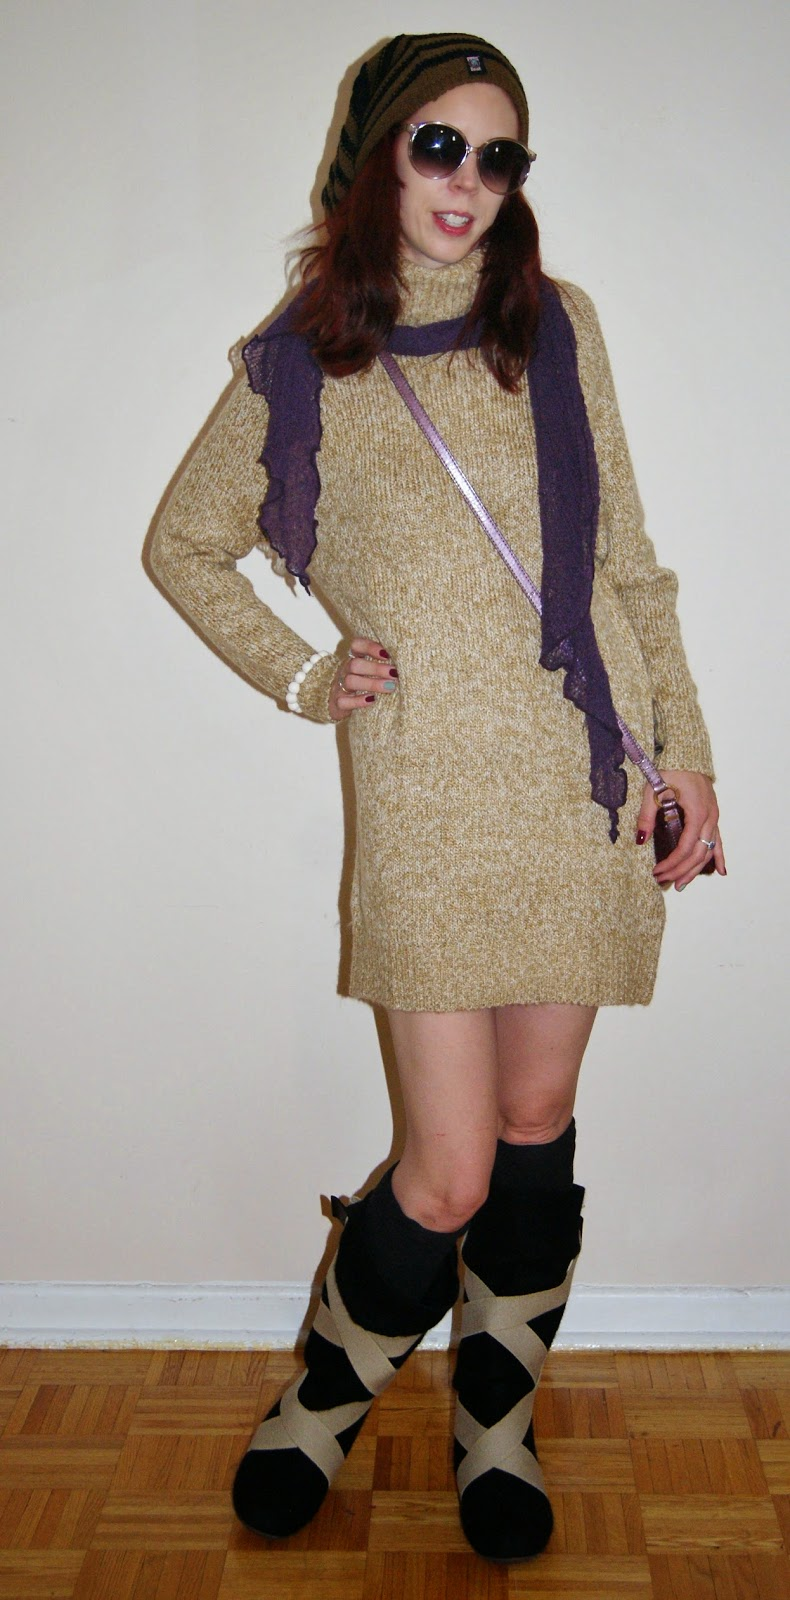 My Style!: Warm + Chic: H+M Sweater Dress, Lahtiset ryppy wool felt boots, Aarika Pohjola Wooden Bracelet from Uniiki, Guess Purse, Purple Scarf, fashion, styletips, shopping, toronto, canada,ontario, outfit, winter, the purple scarf, melanieps, finland, finnish, design, aki choklat,, pug gear, toque